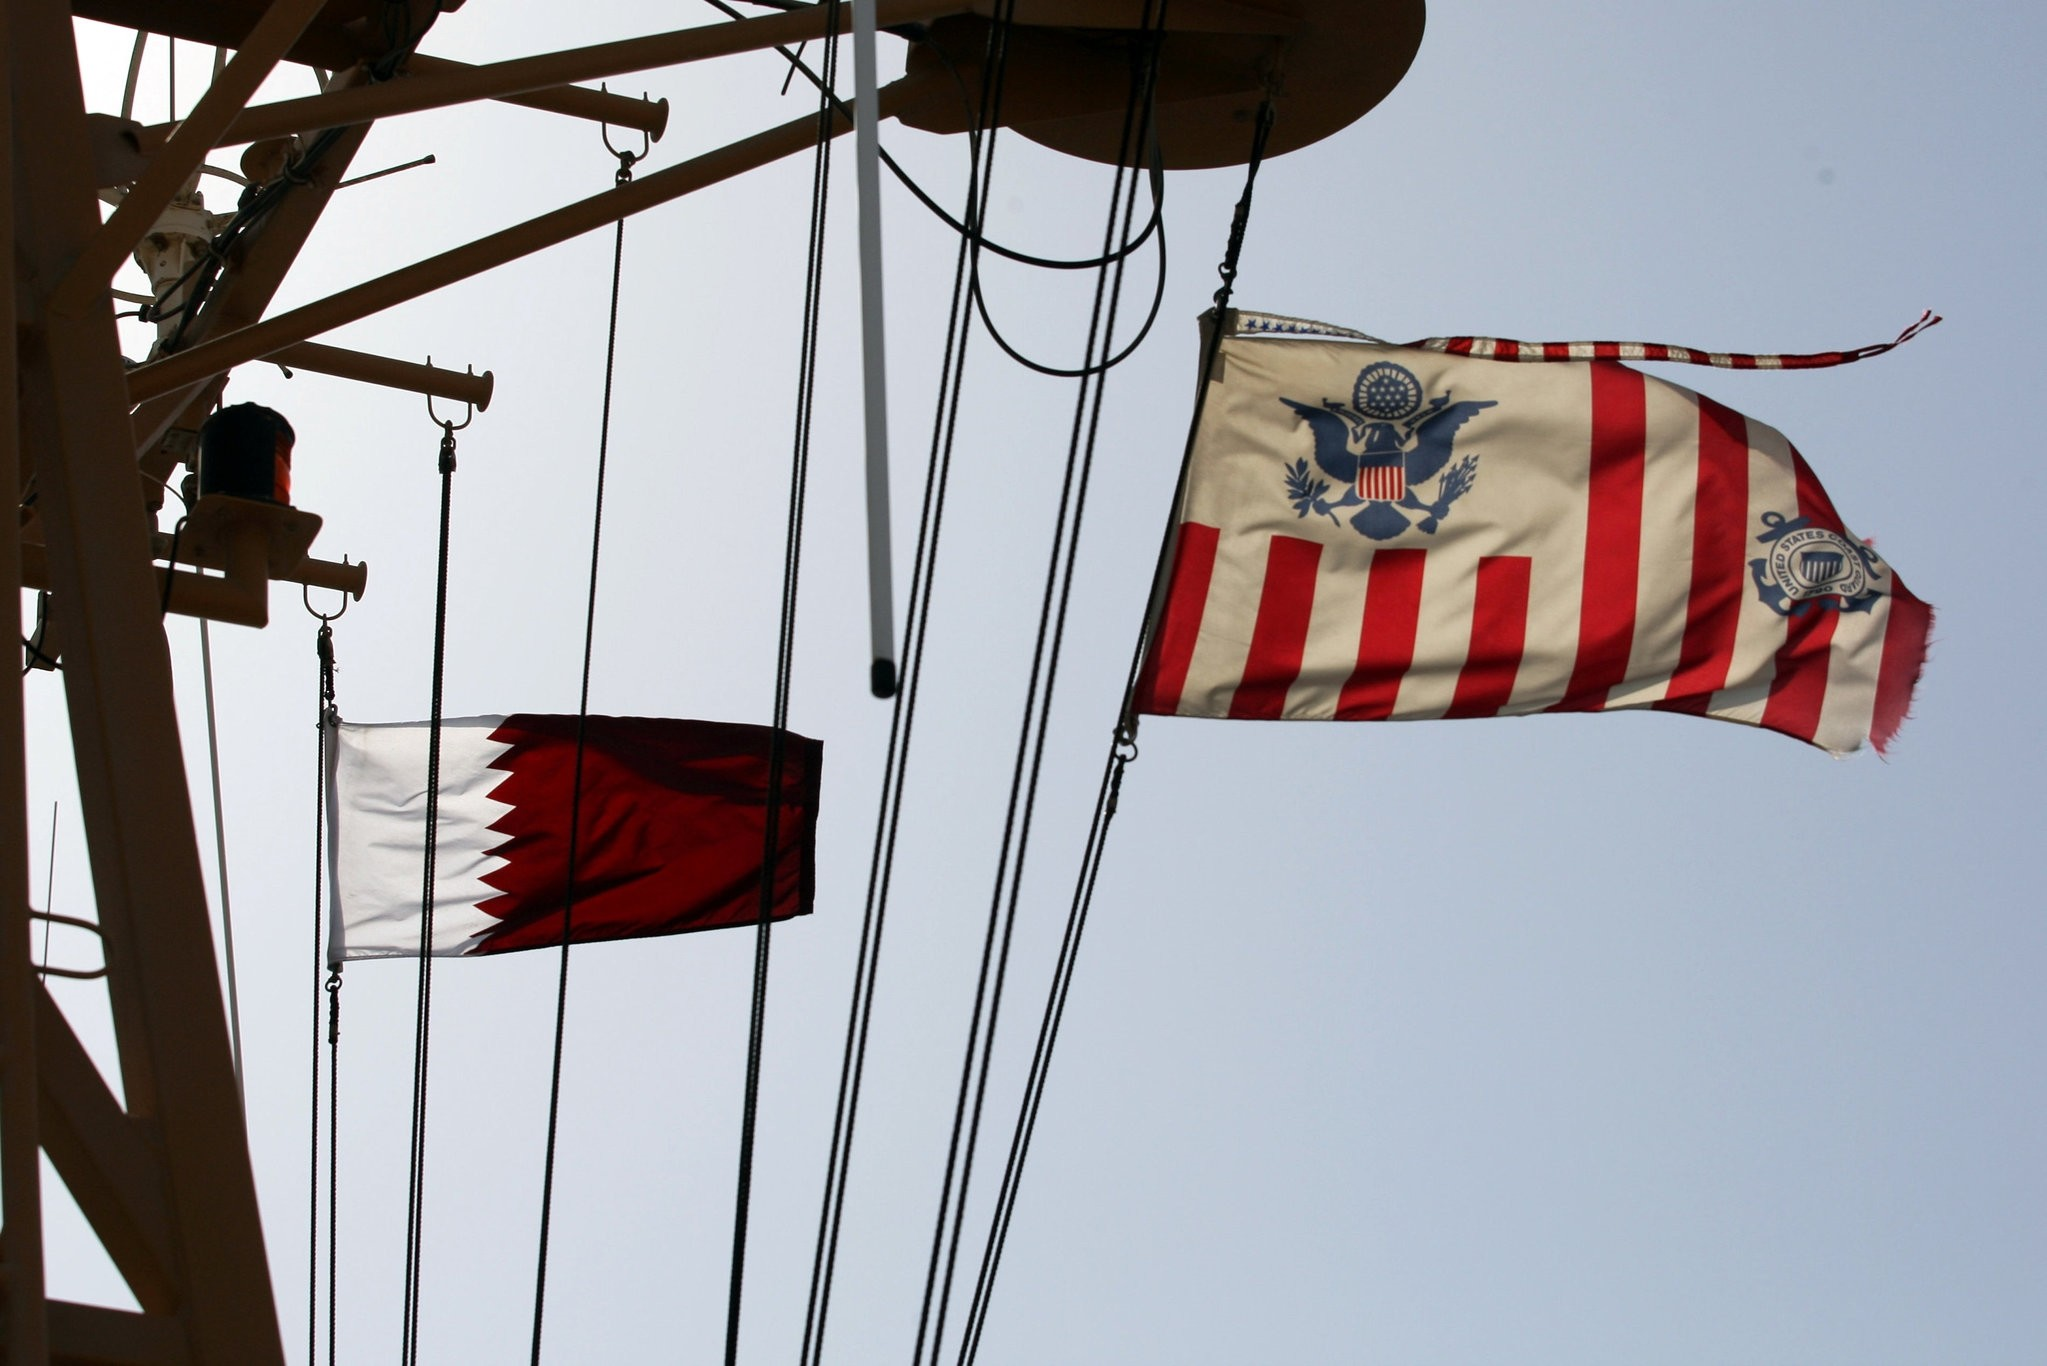 Qatari and a U.S. Coast Guard flags flutter during a joint naval exercise by the U.S. and Qatar troops in the Gulf region, June 16.